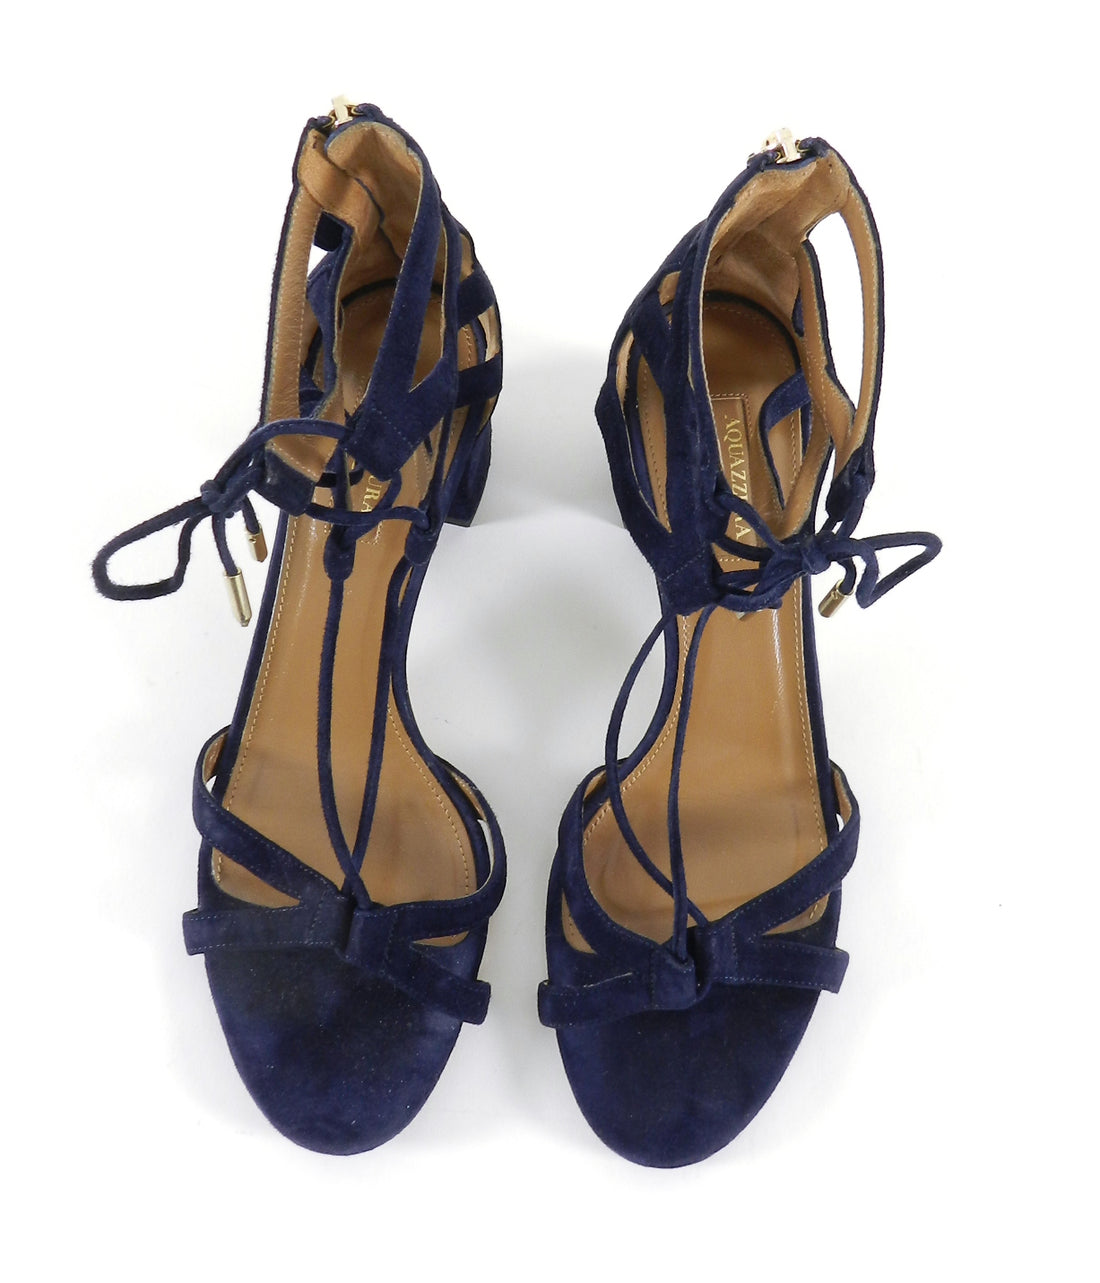 Aquazzura Navy Suede Beverly Hills Suede Sandals - 38.5